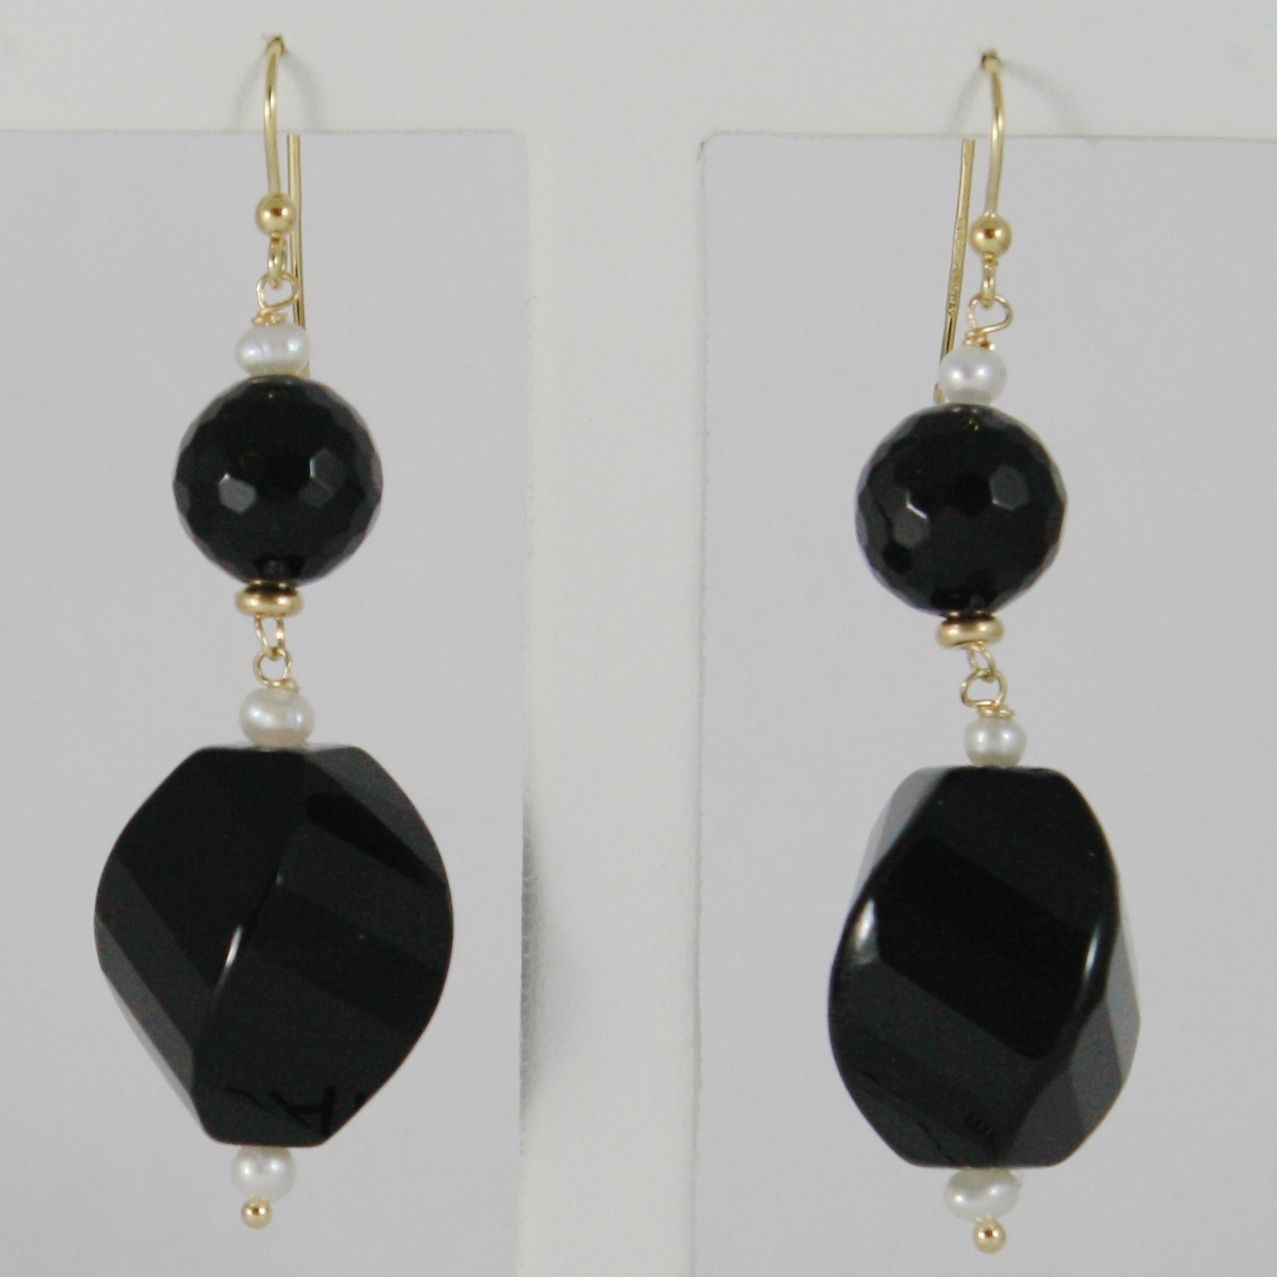 18K YELLOW GOLD PENDANT EARRINGS BIG TWISTED FACETED BLACK ONYX MADE IN ITALY